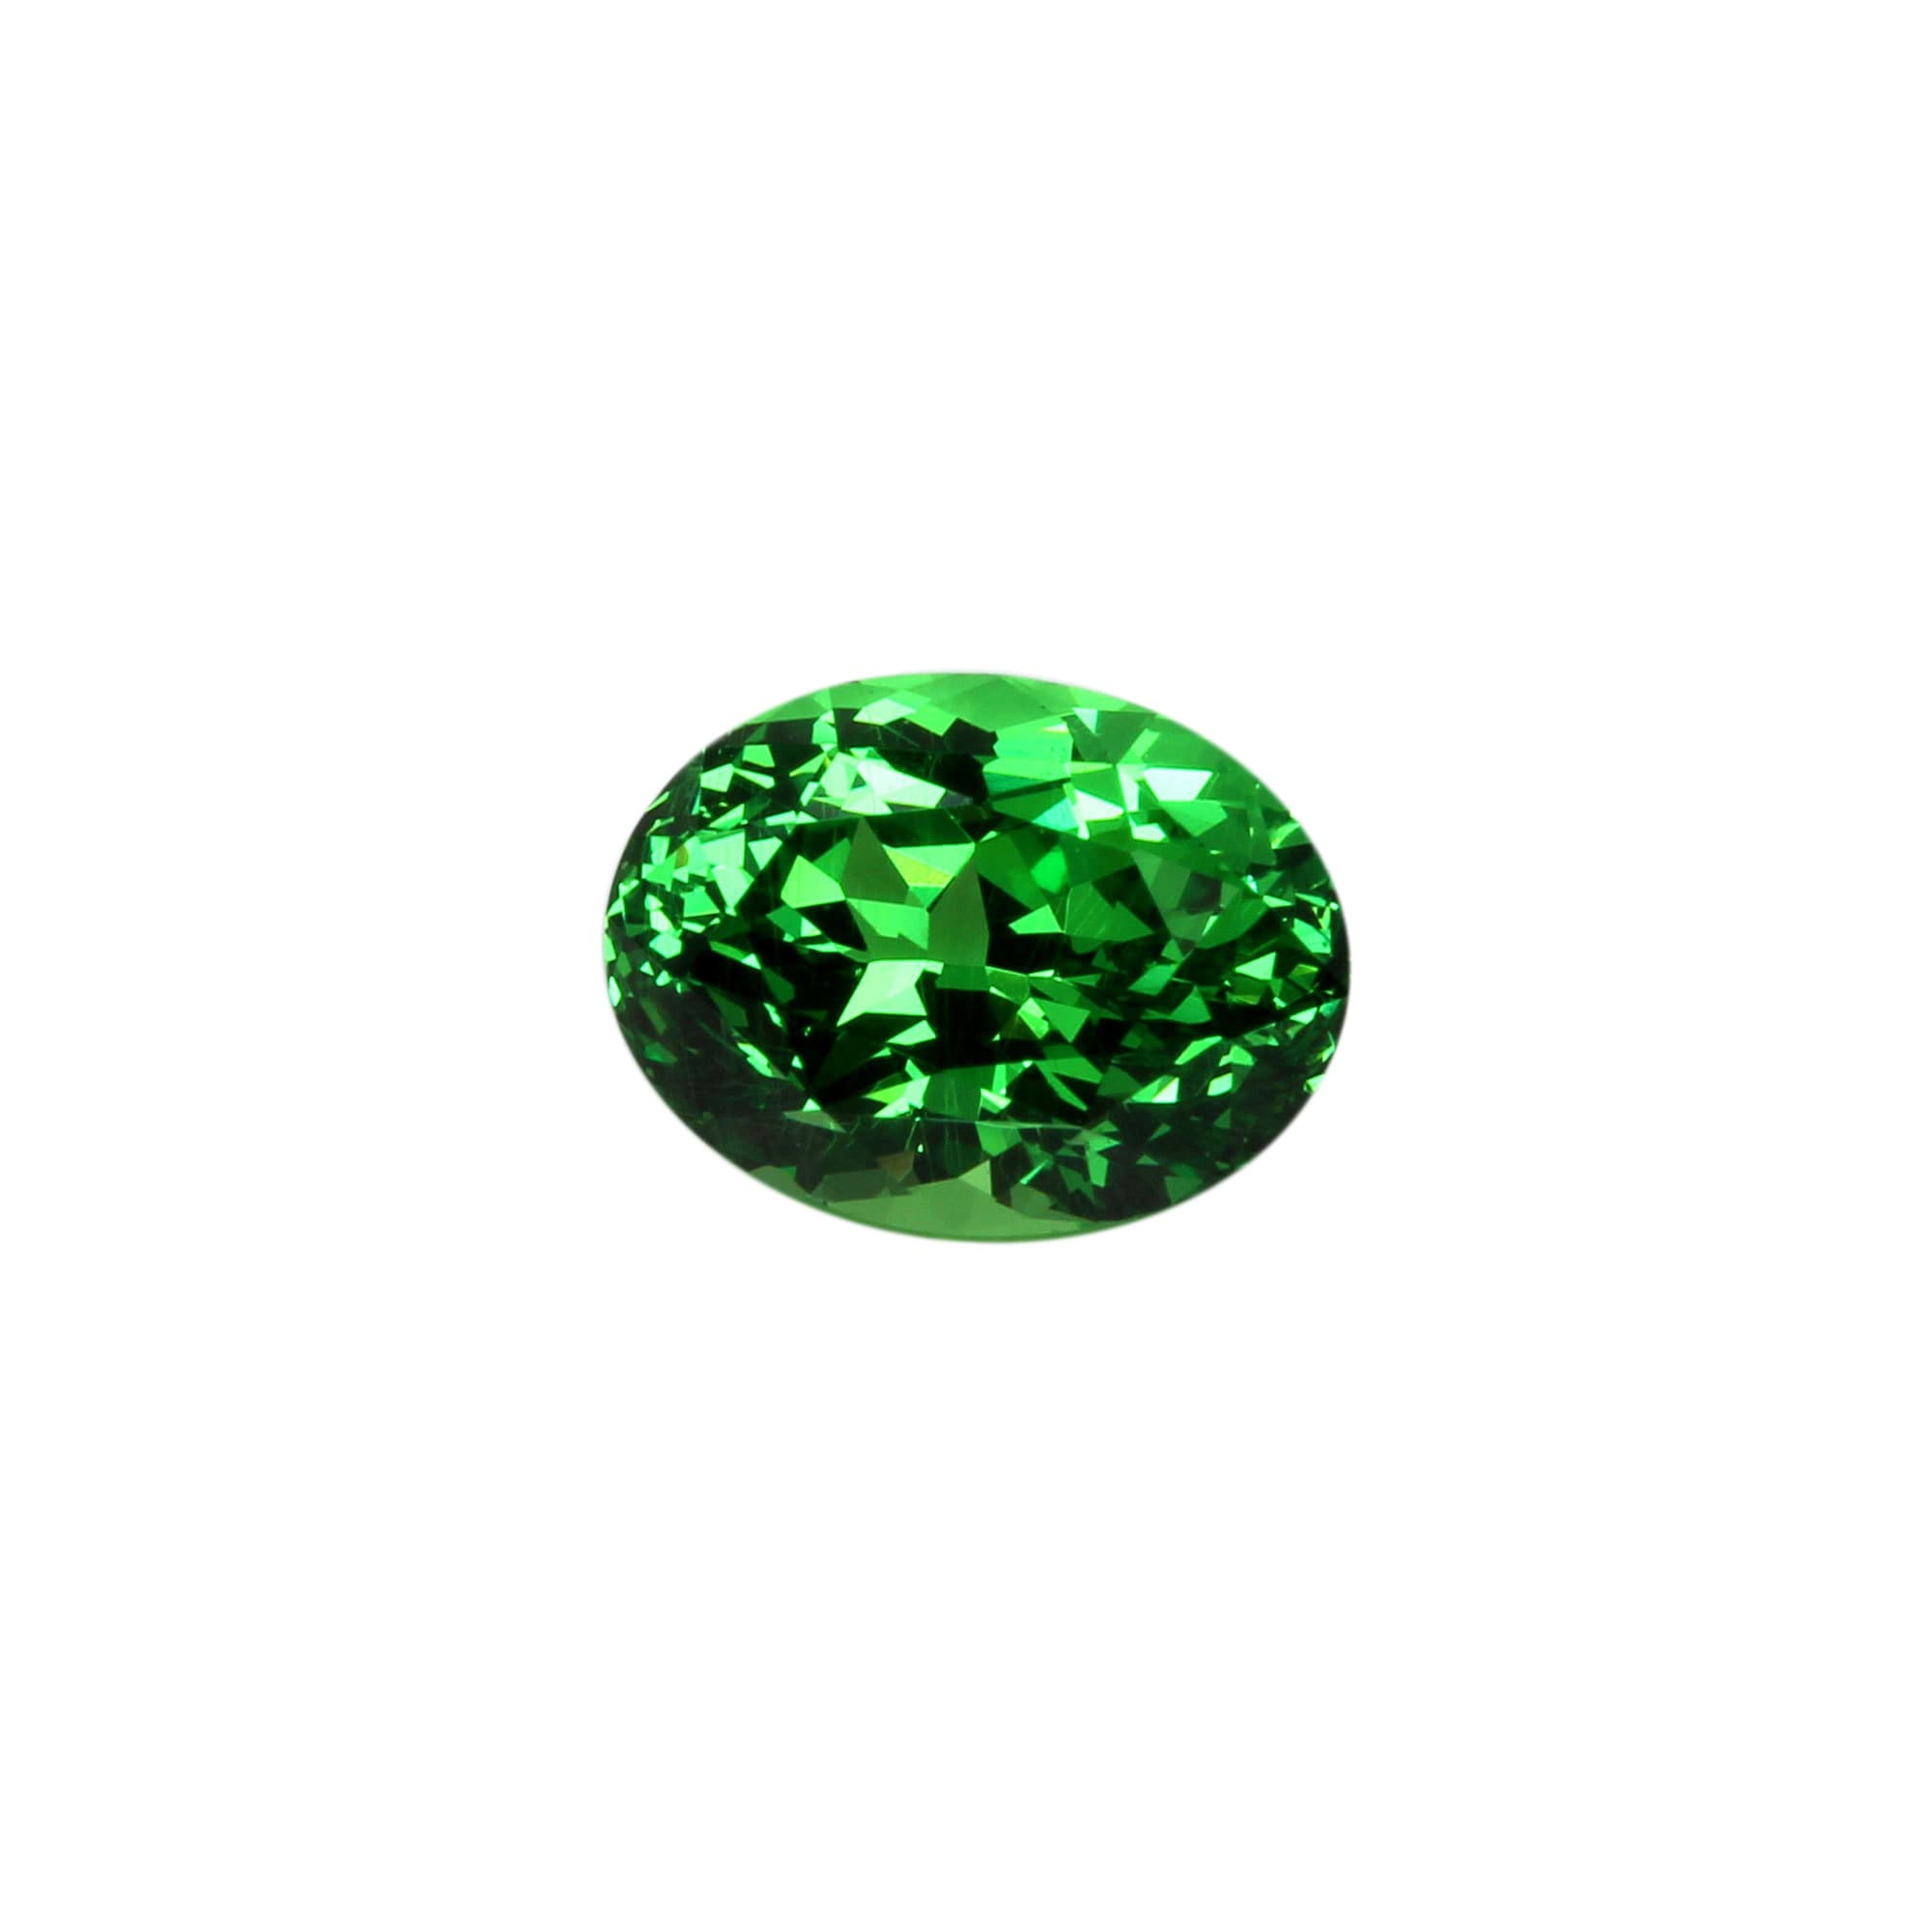 kenyan gemstones adventurer tsavorite gemstone gem